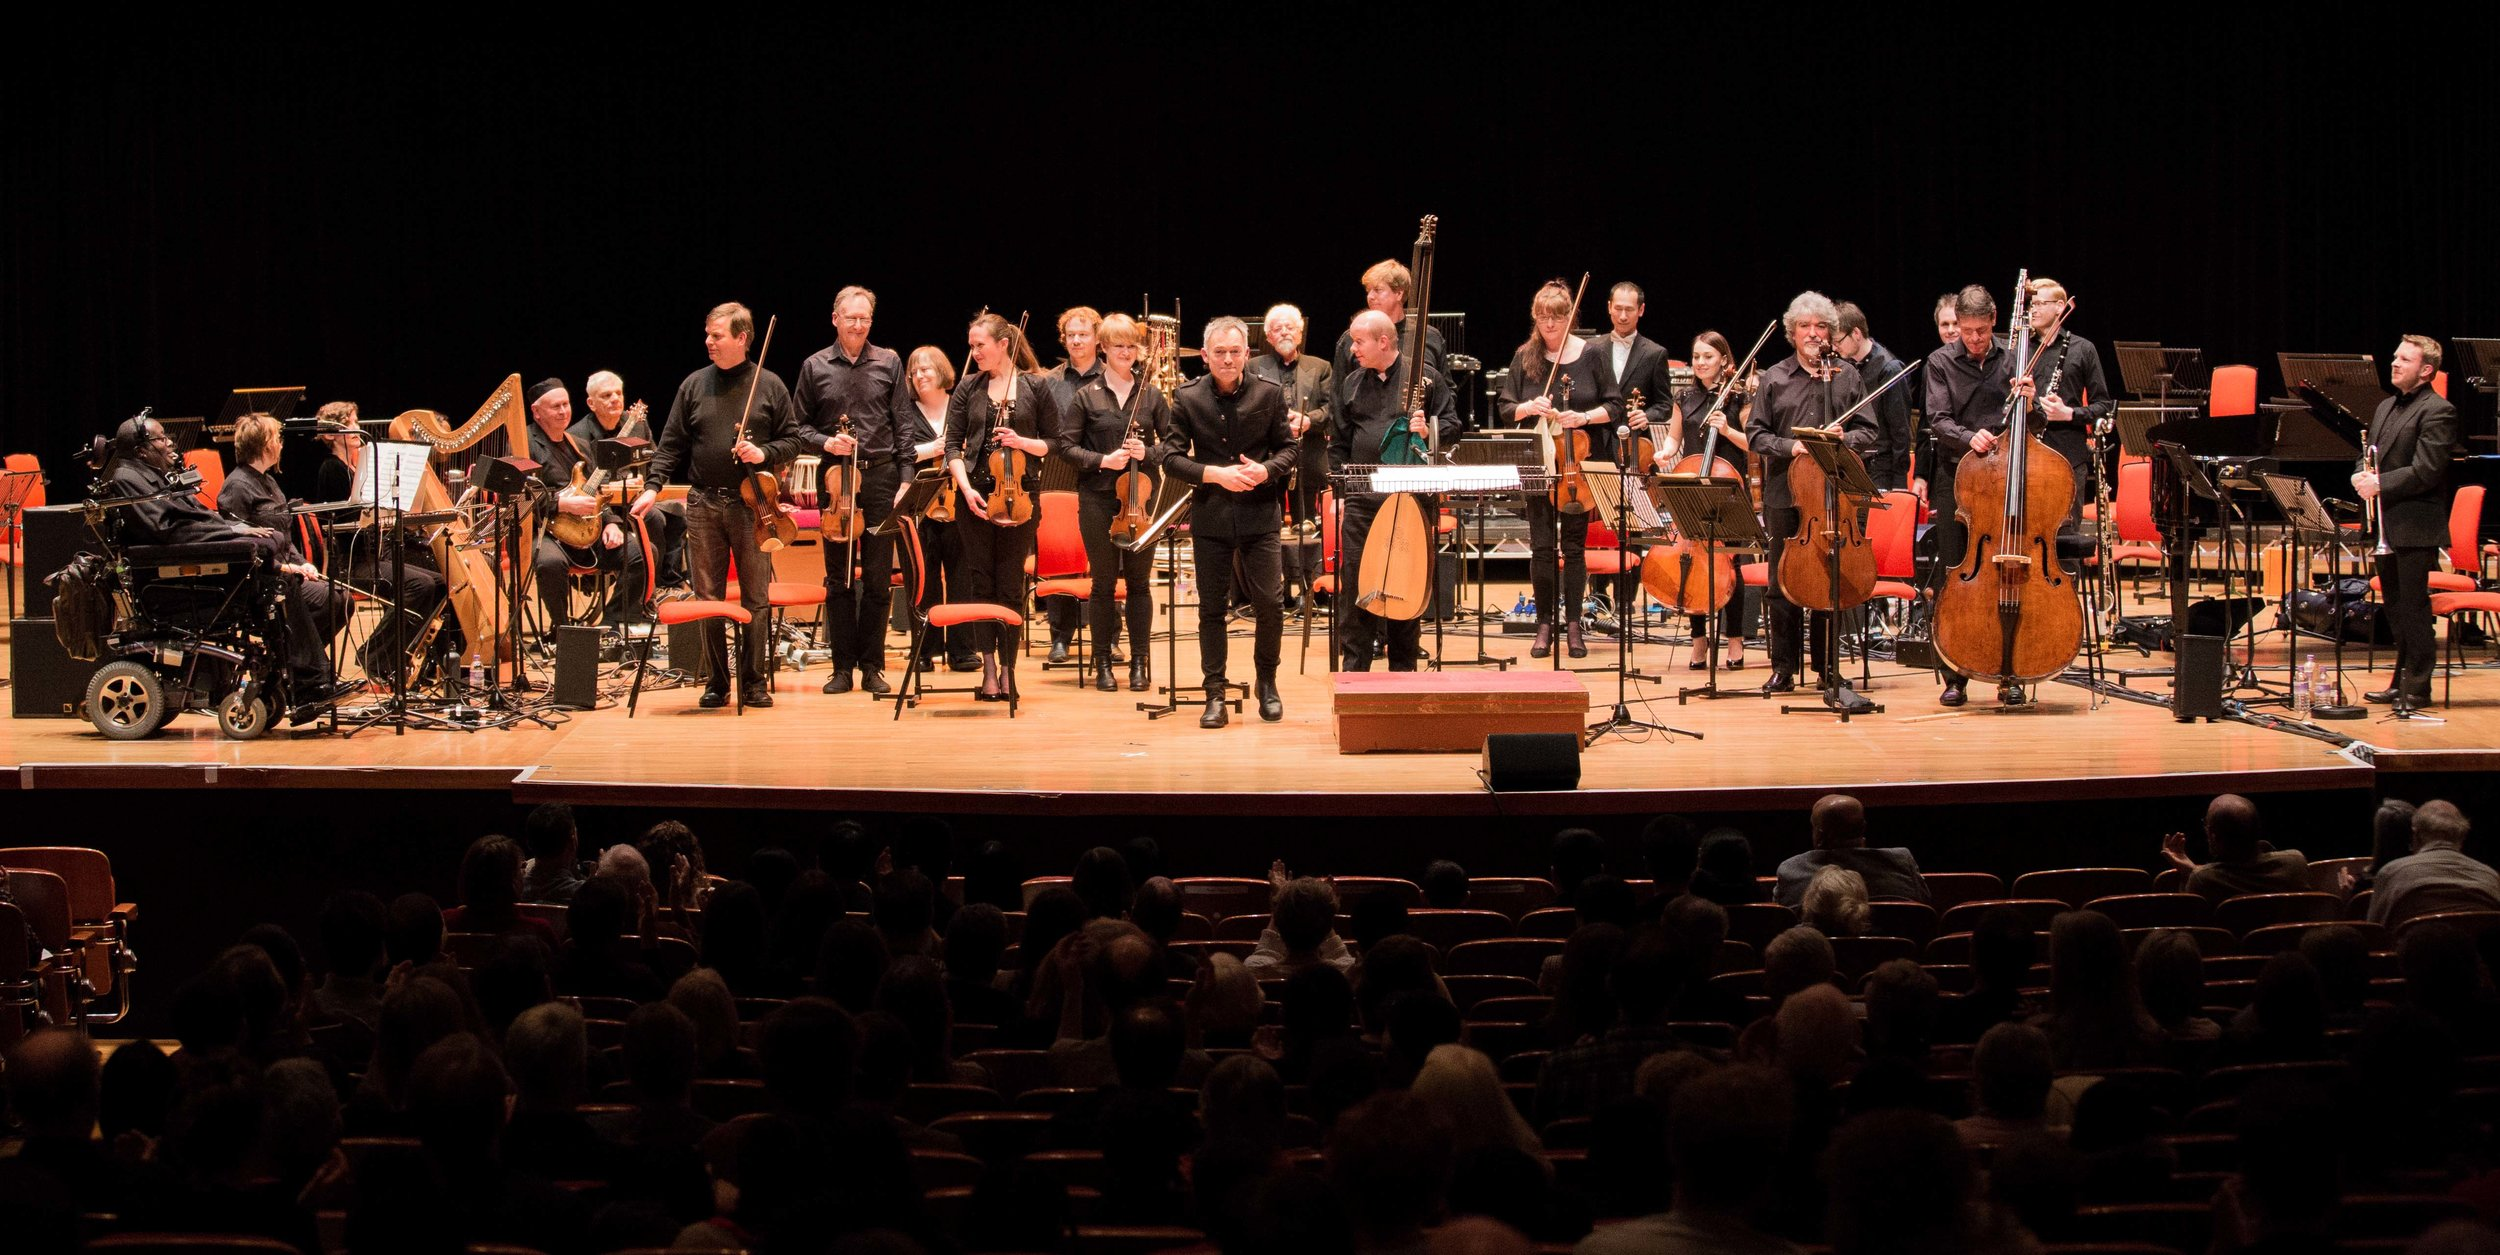 City of Birmingham Symphony Orchestra in collaboration with The British Paraorchestra